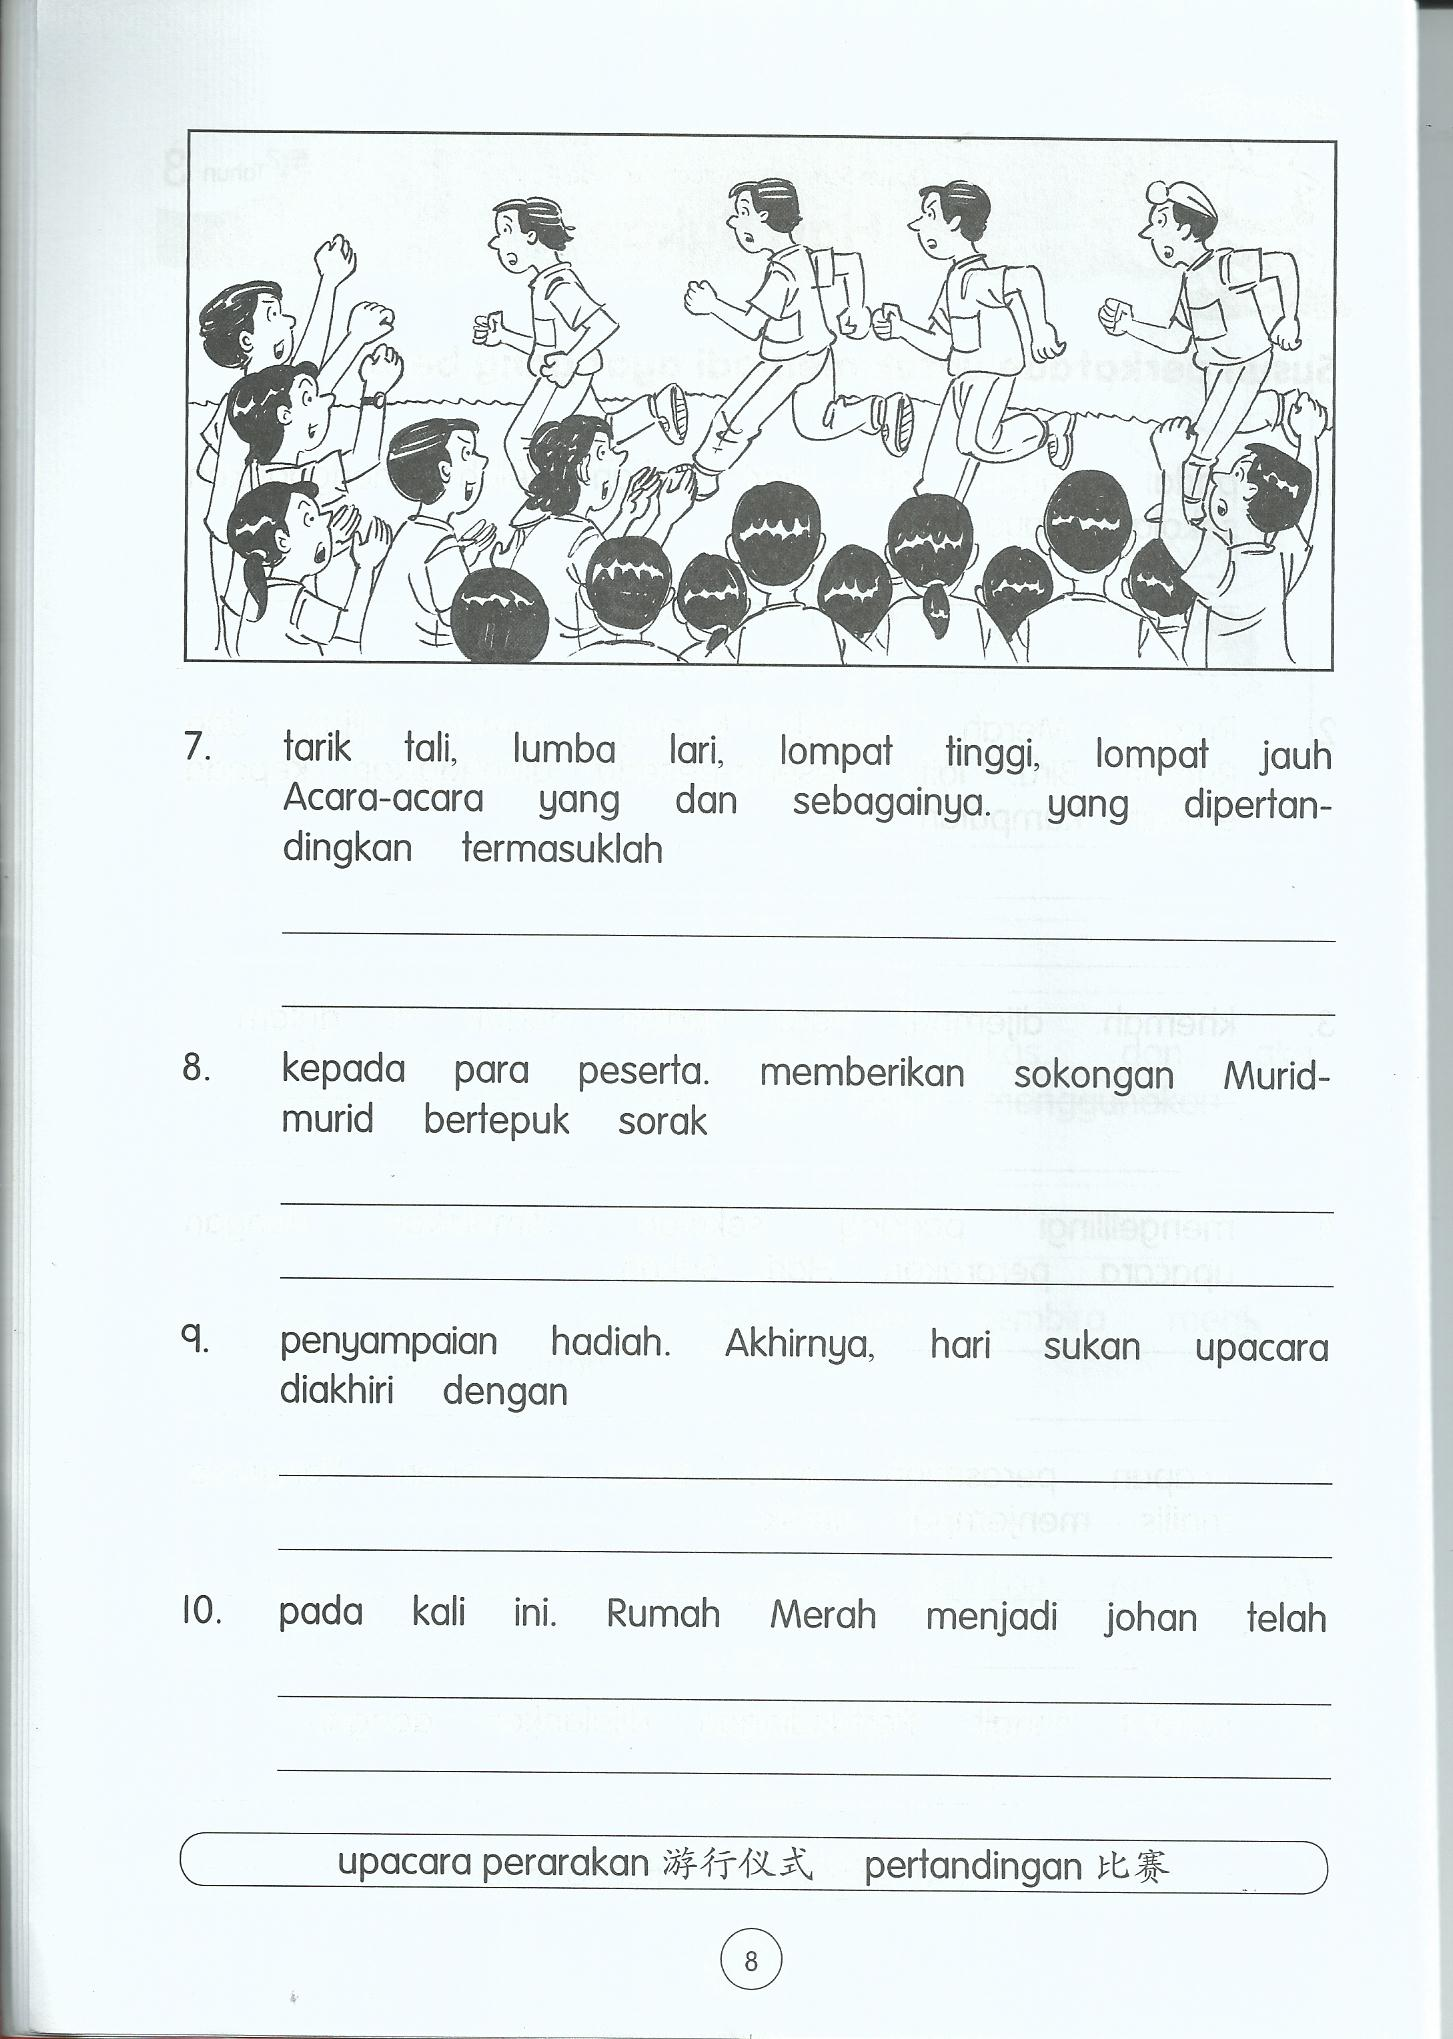 Worksheets Enopi Worksheets bm primary 2 life long sharing page susunayat0008 susunayat0009